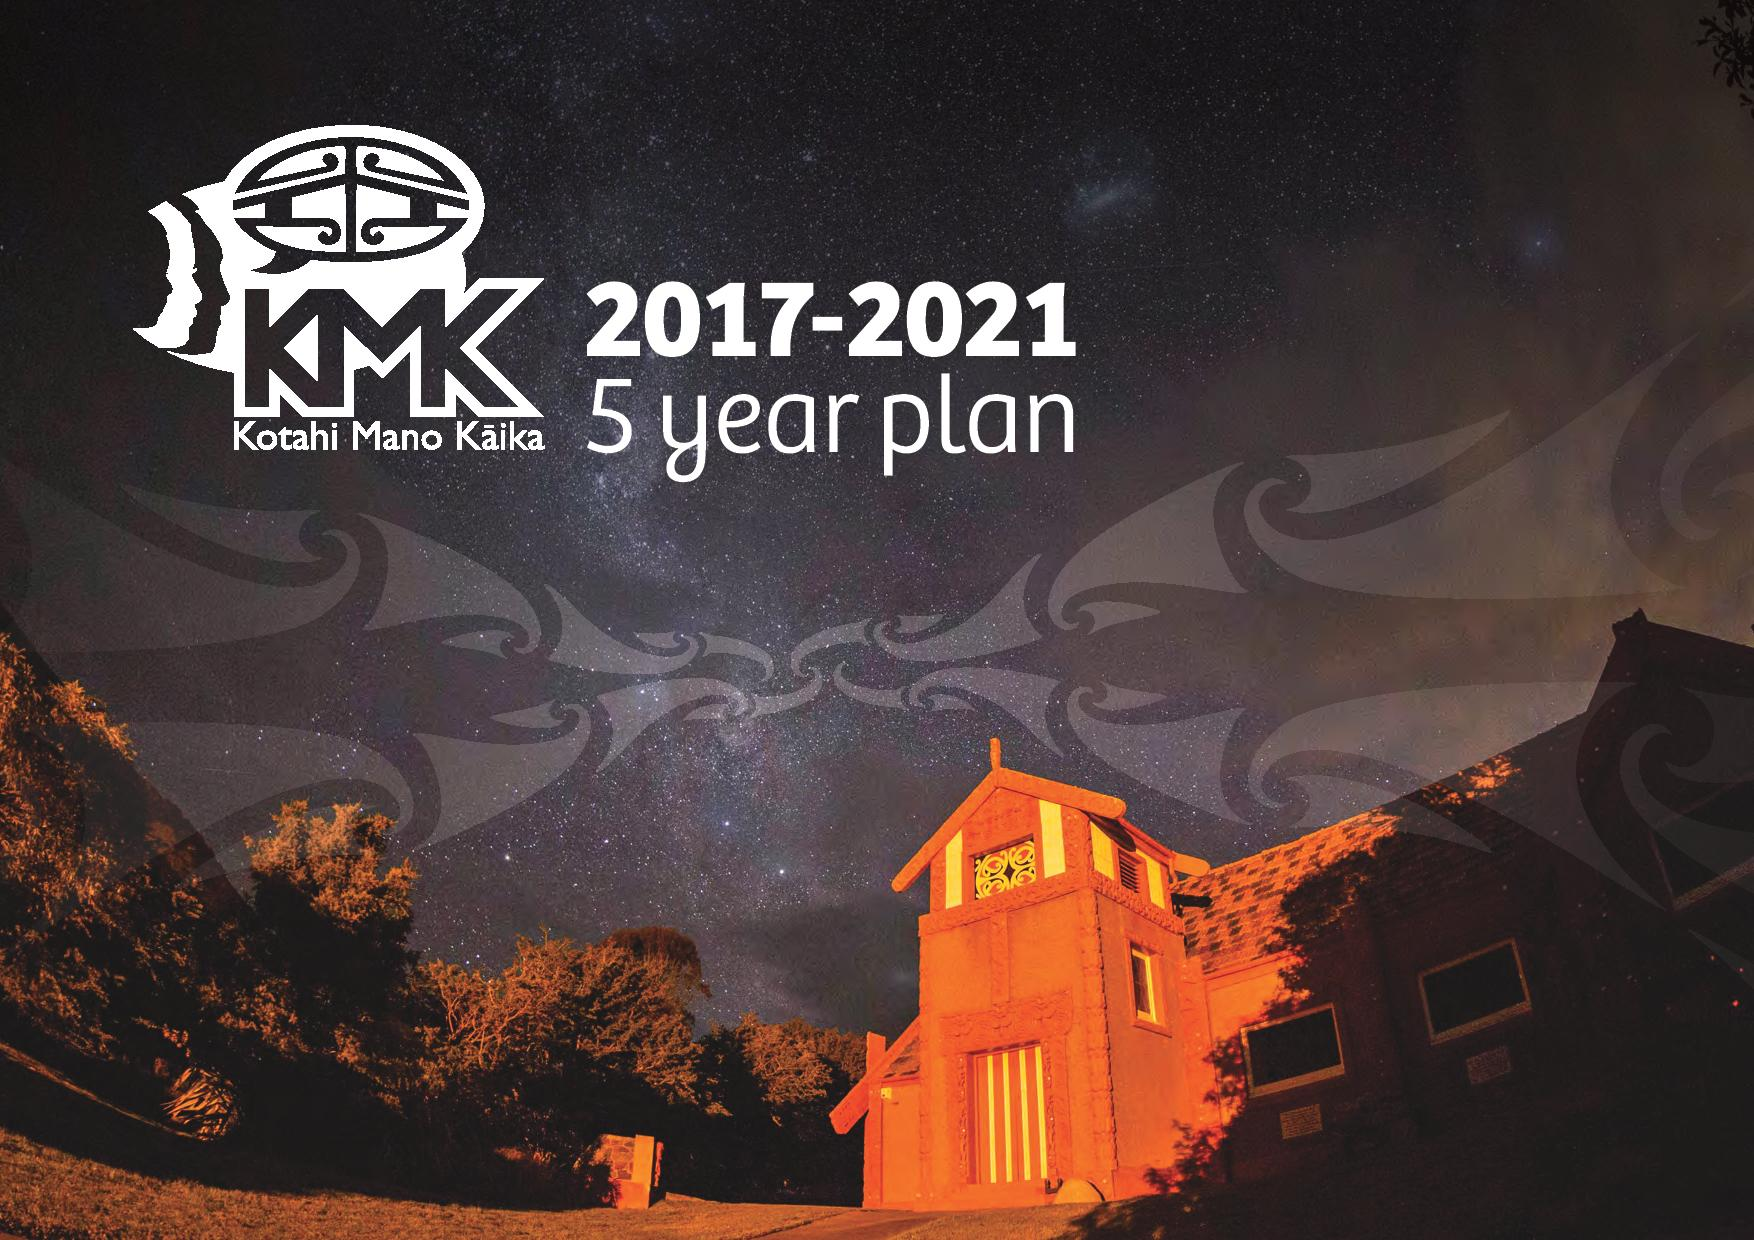 KMK 5 Year Plan 2017